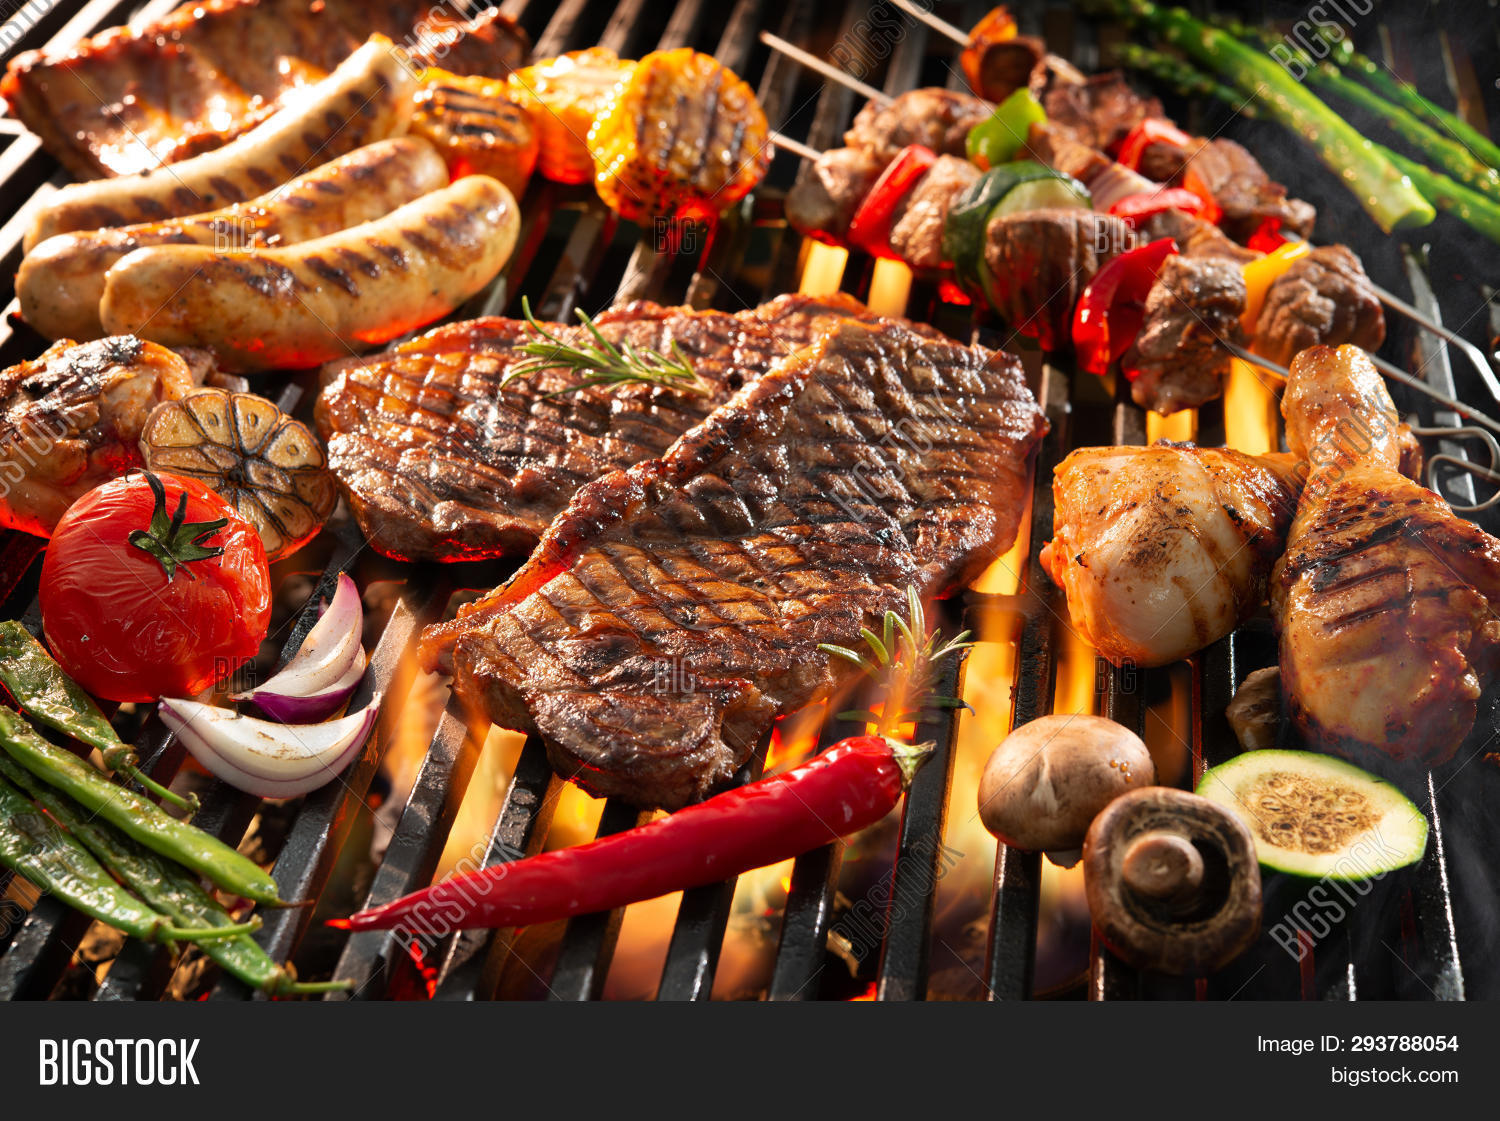 barbecue,barbecued,barbecuing,barbeque,bbq,beef,bratwurst,charcoal,chicken,closeup,coals,cooked,cooking,cookout,dark,dinner,fire,flame,food,garden,grill,grilled,grilling,heat,herb,hot,kebab,kebabs,meal,meat,outdoors,party,picnic,pork,preparation,ribs,roast,roasted,sausage,season,seasoning,selection,shashlik,sizzling,skewer,smoke,spare ribs,steak,vegetable,weekend